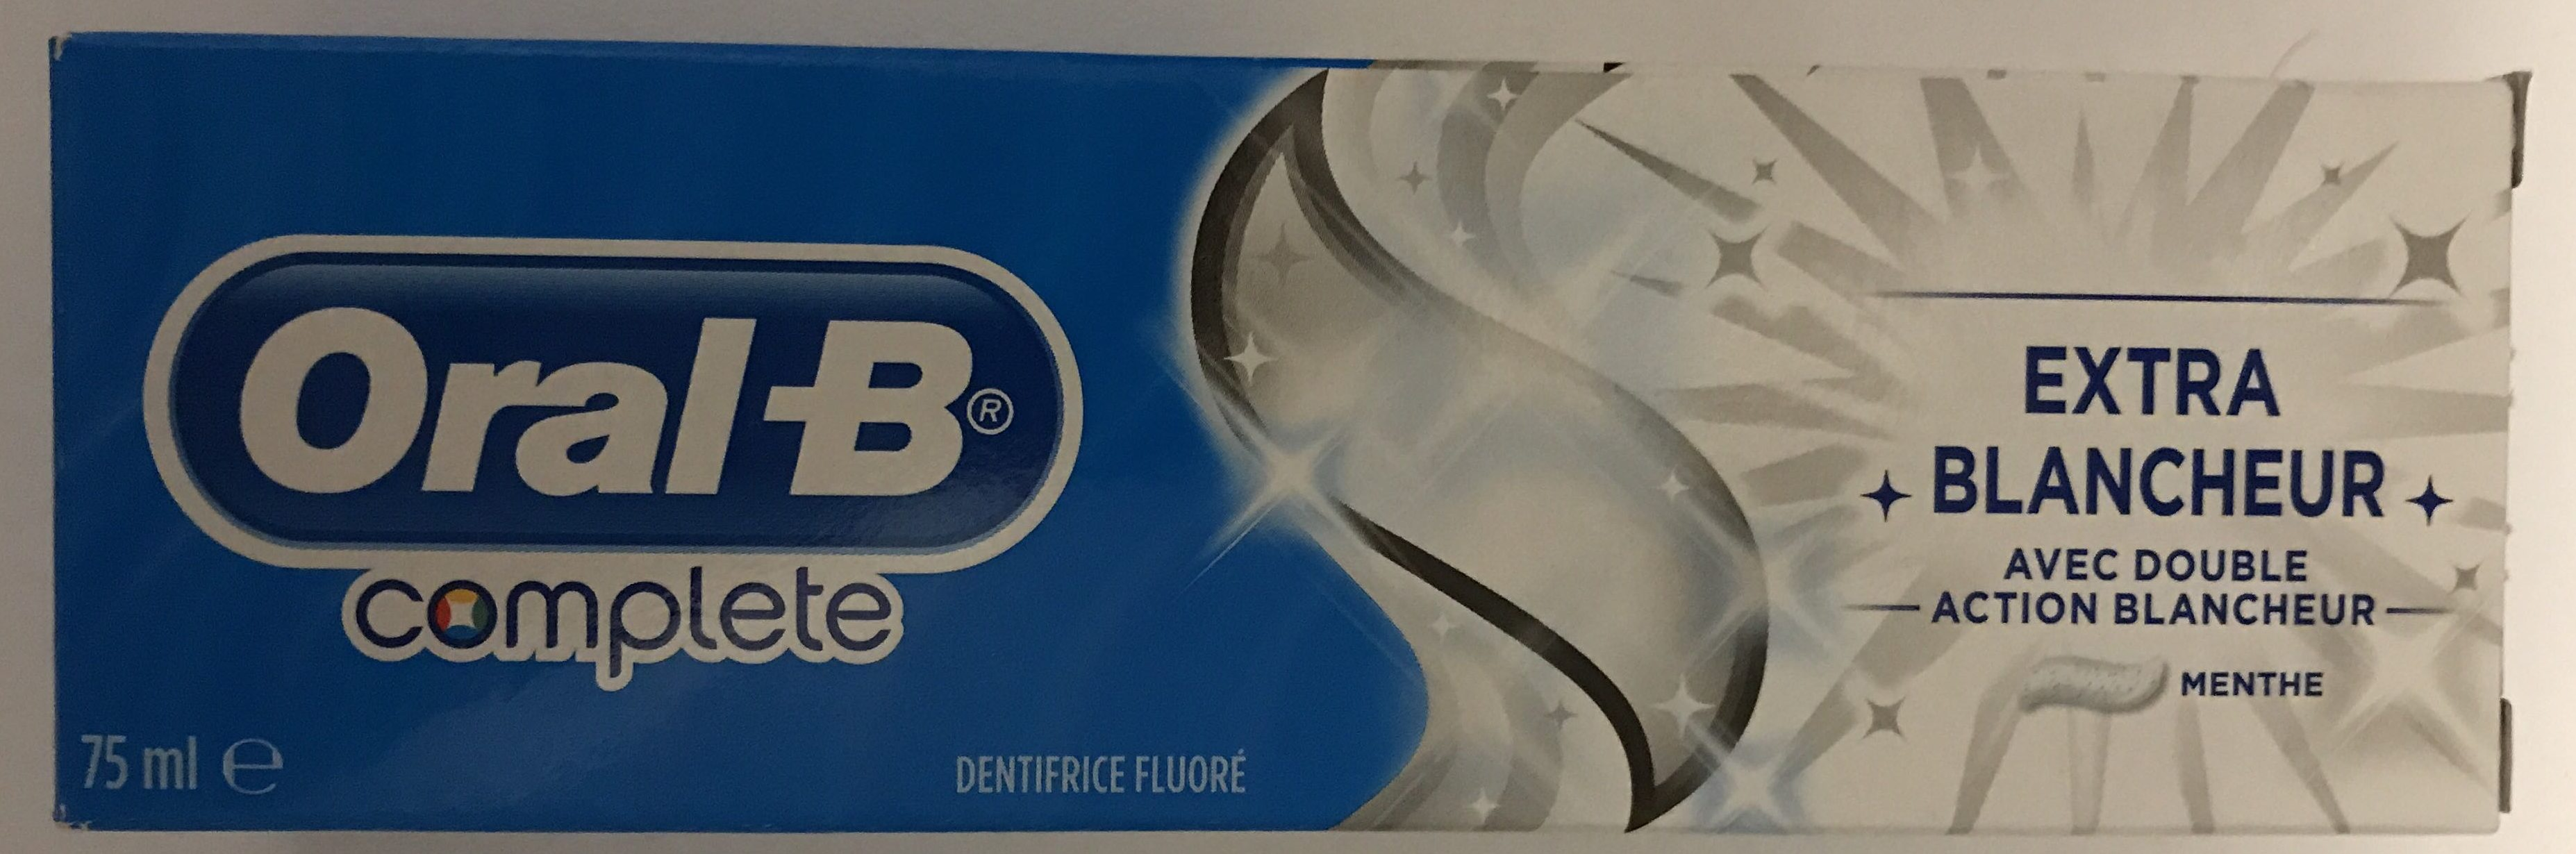 Oral-B Complete - Extra Blancheur - Product - fr